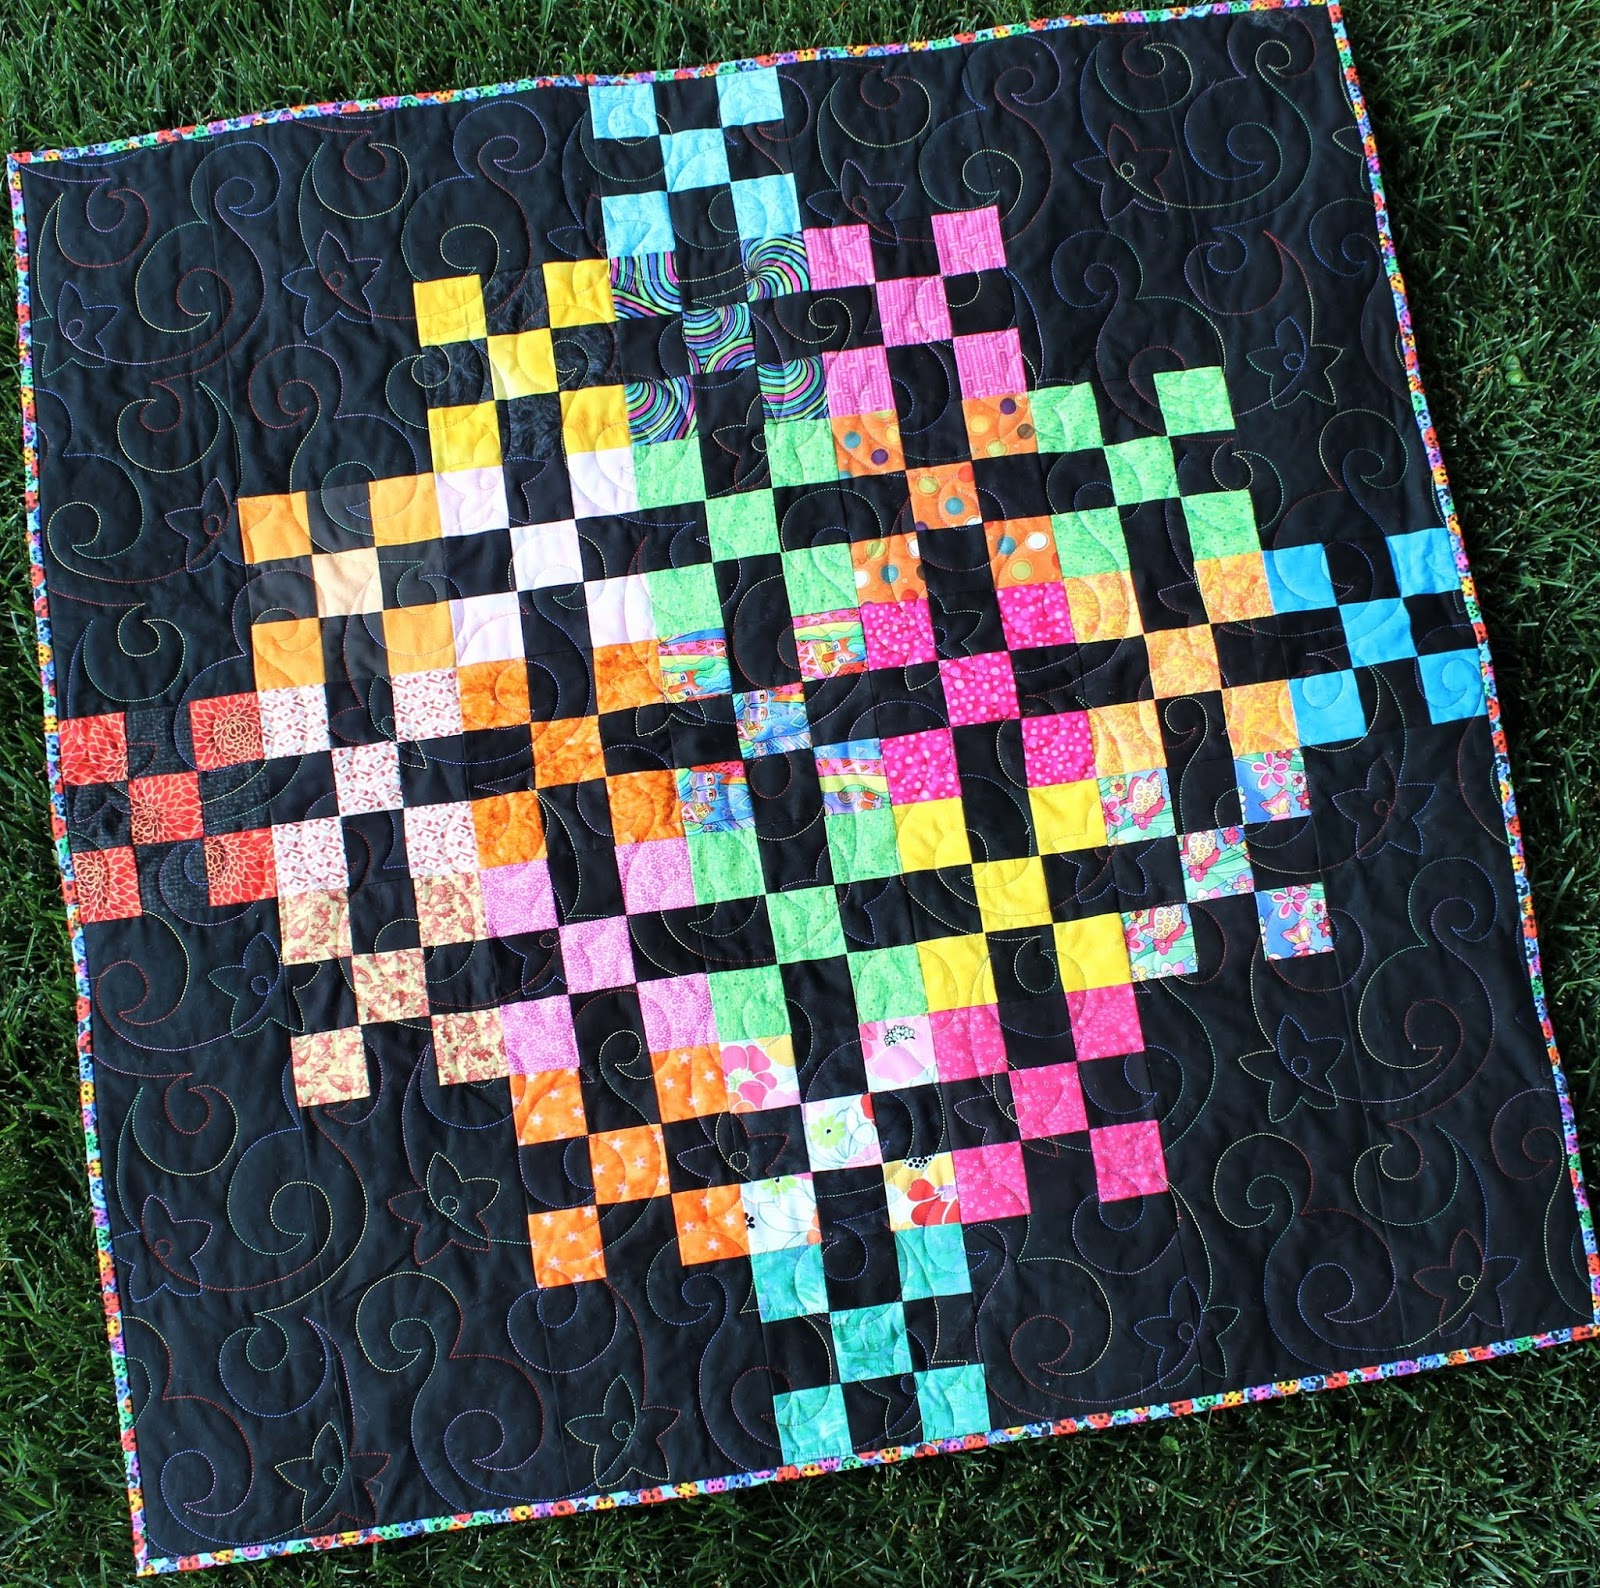 BURST-BABY QUILT-EASY QUILT PATTERN-BEGINNER QUILT PATTERN-MULTI SIZED PATTERN